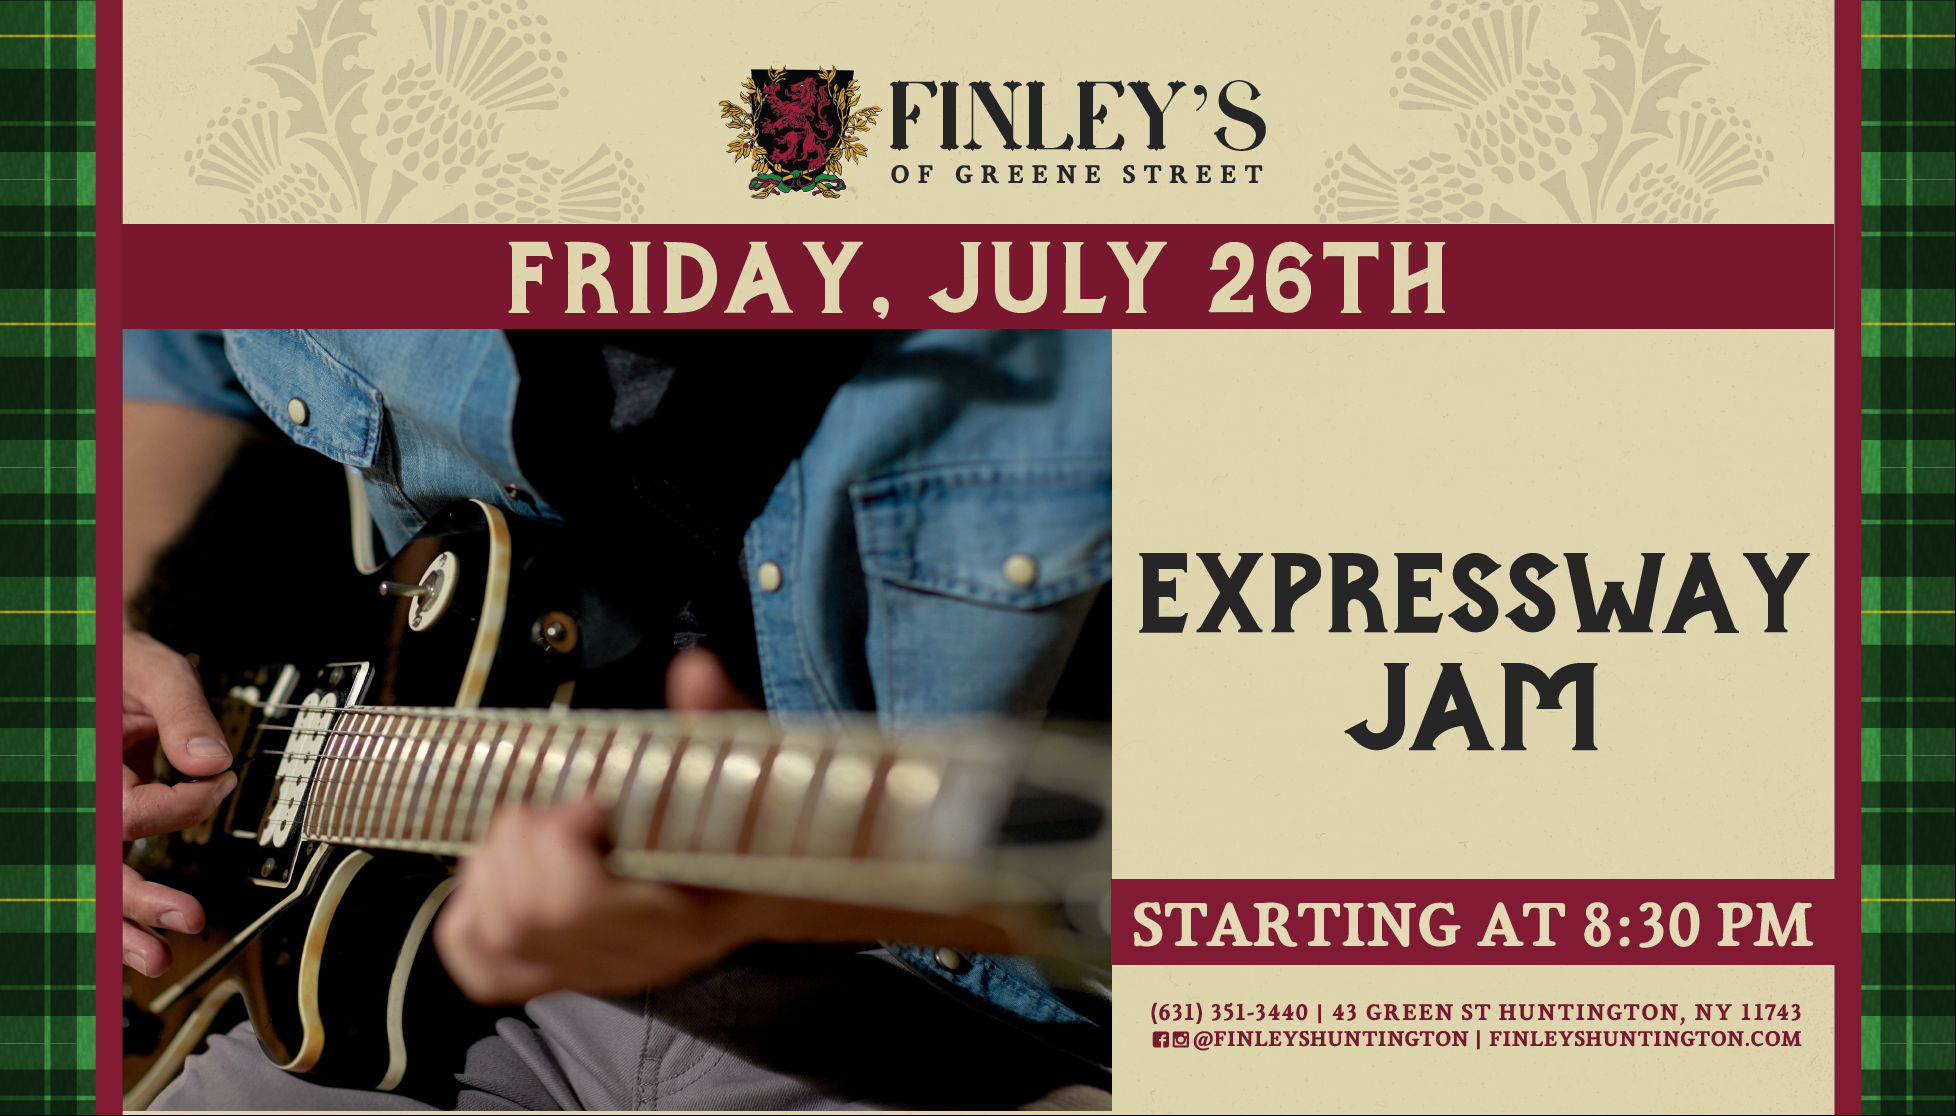 Flyer for live music with Expressway Jam on July 26th at 8:30pm